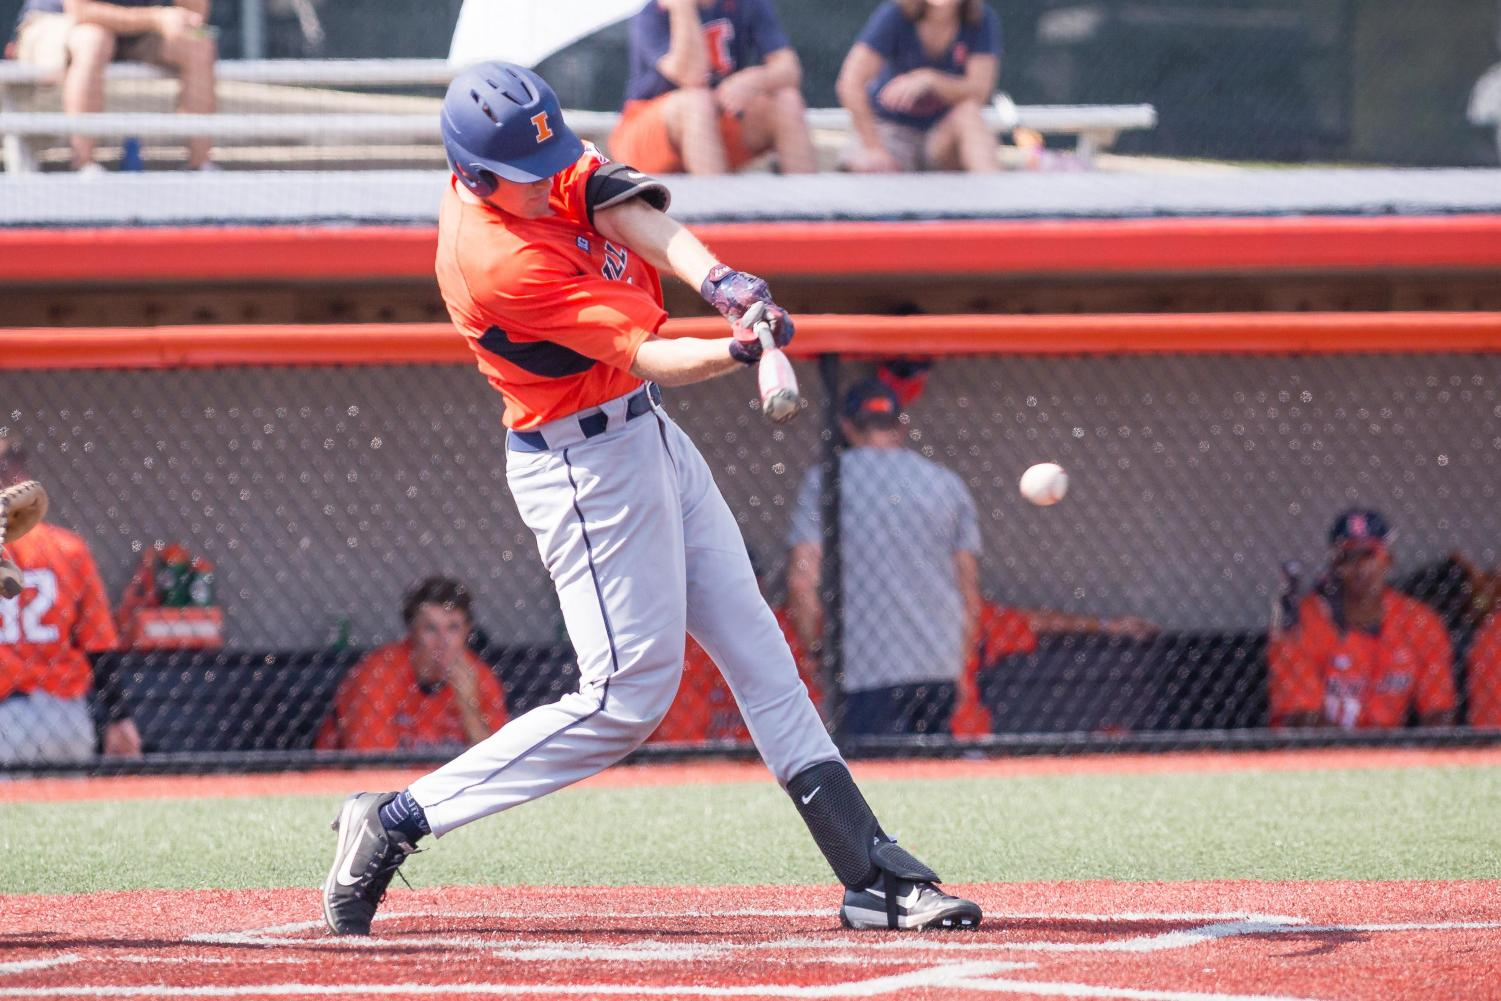 Illinois infielder Bren Spillane hits the ball during the game against Indiana State at Illinois Field on Sept. 24. Spillane has helped carry the Illini through a five-game winning streak.